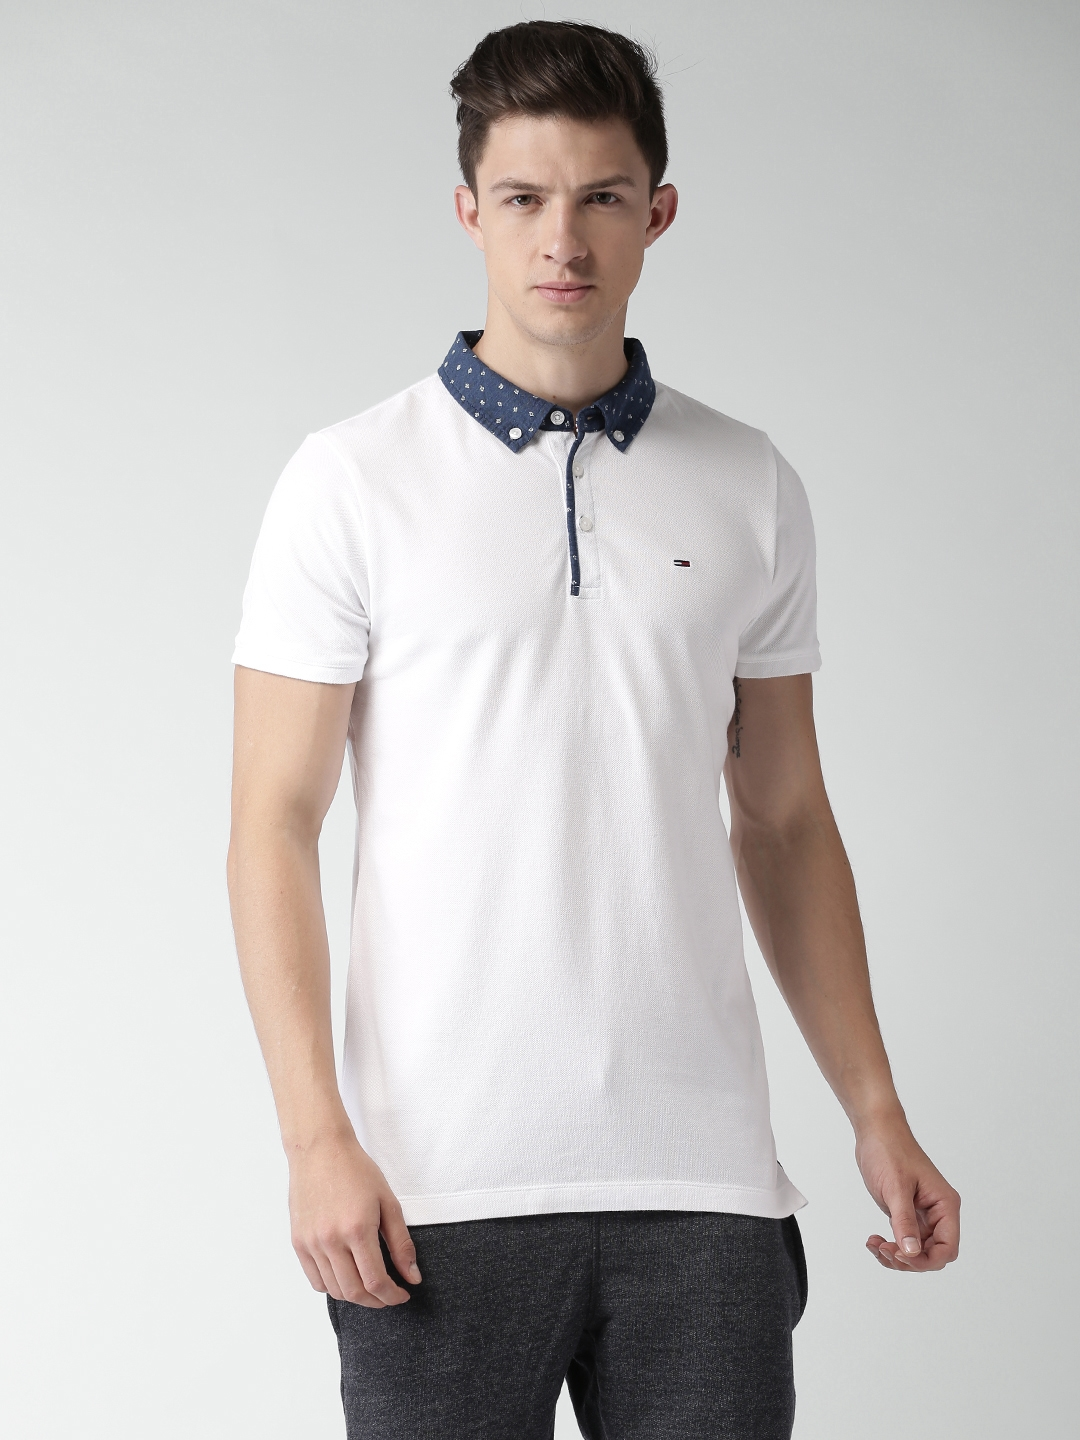 Buy Tommy Hilfiger Men White Solid Polo T Shirt - Tshirts for Men ... d463cfd30e2